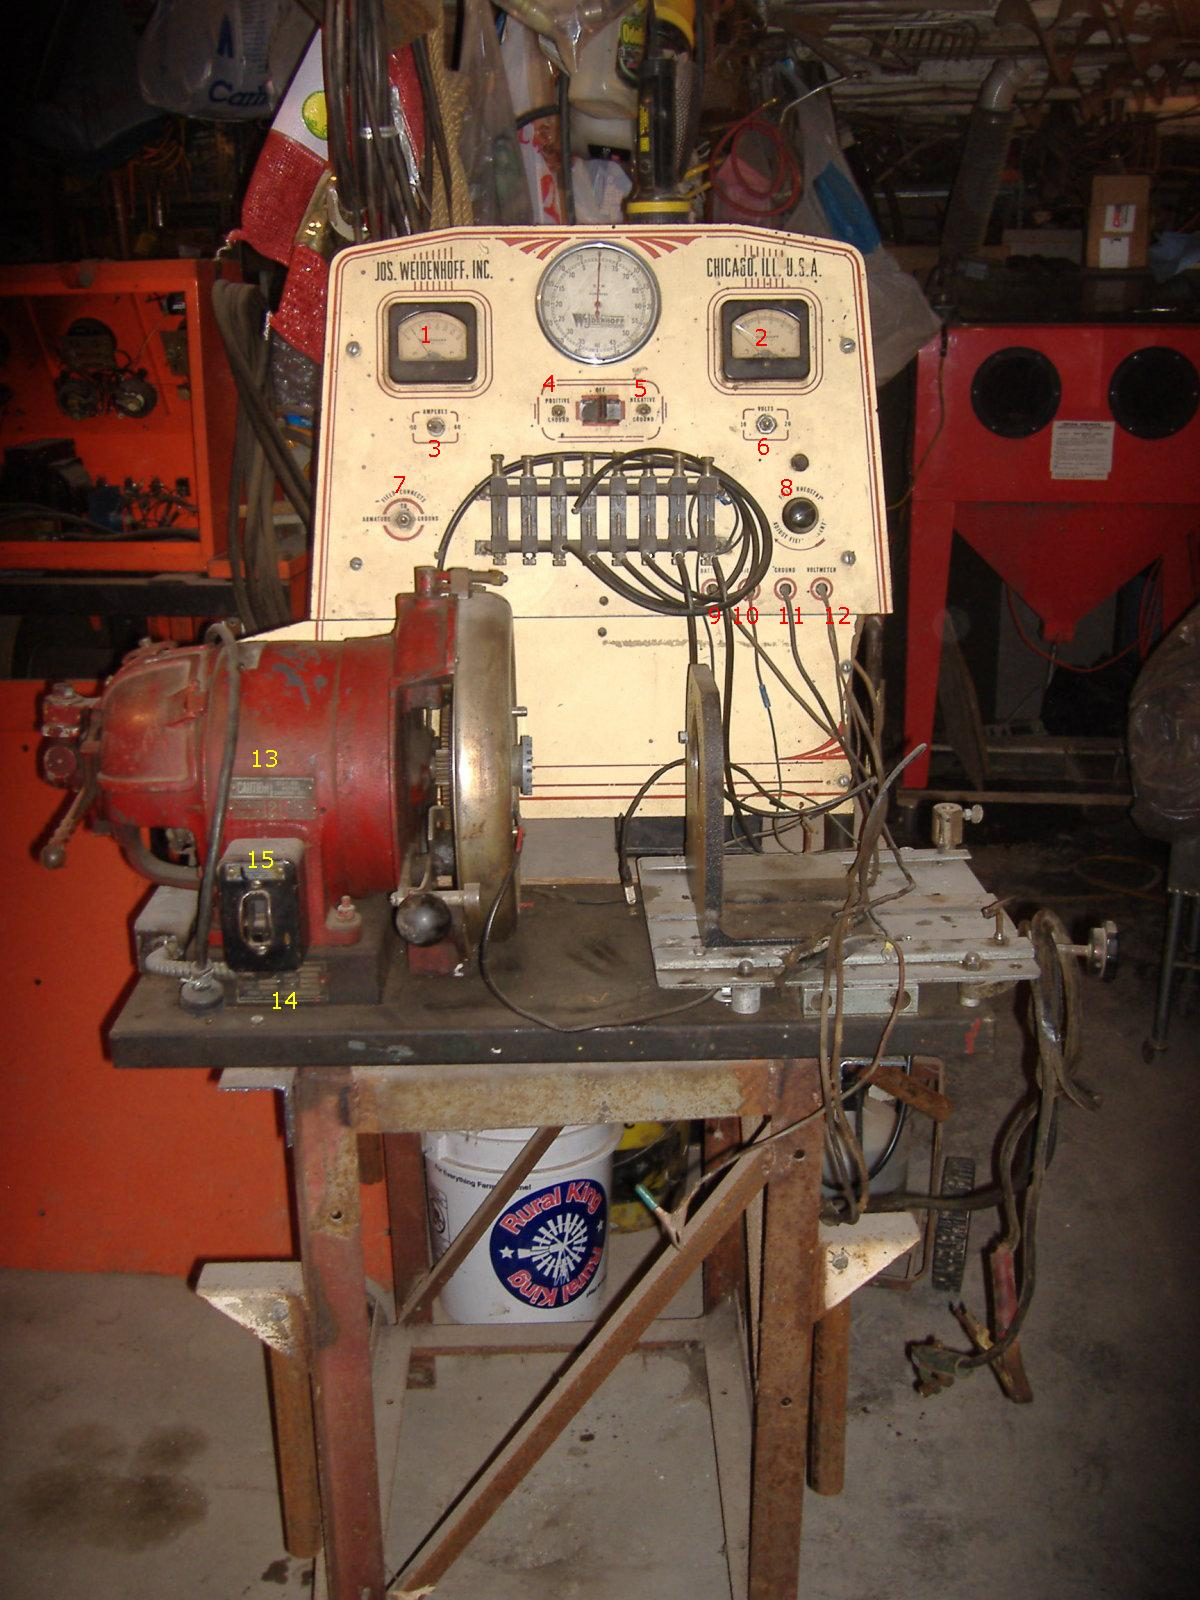 I Have A Very Old Magneto Testing Bench The Name On It Is